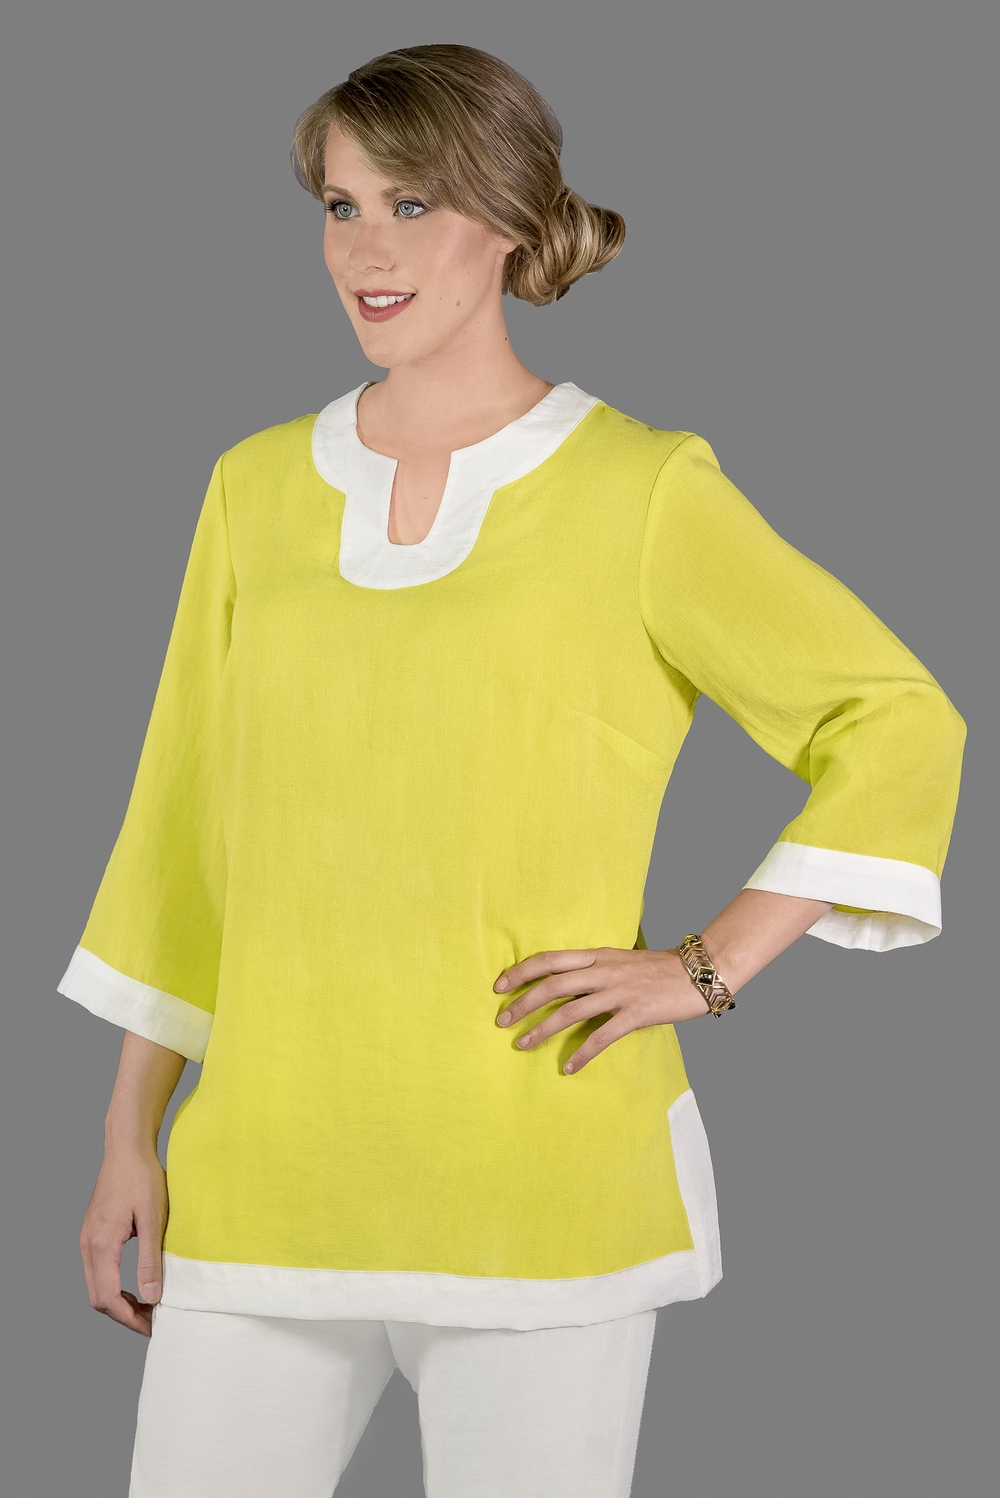 AA174 - Bella Tunic    CL2593 - Citron